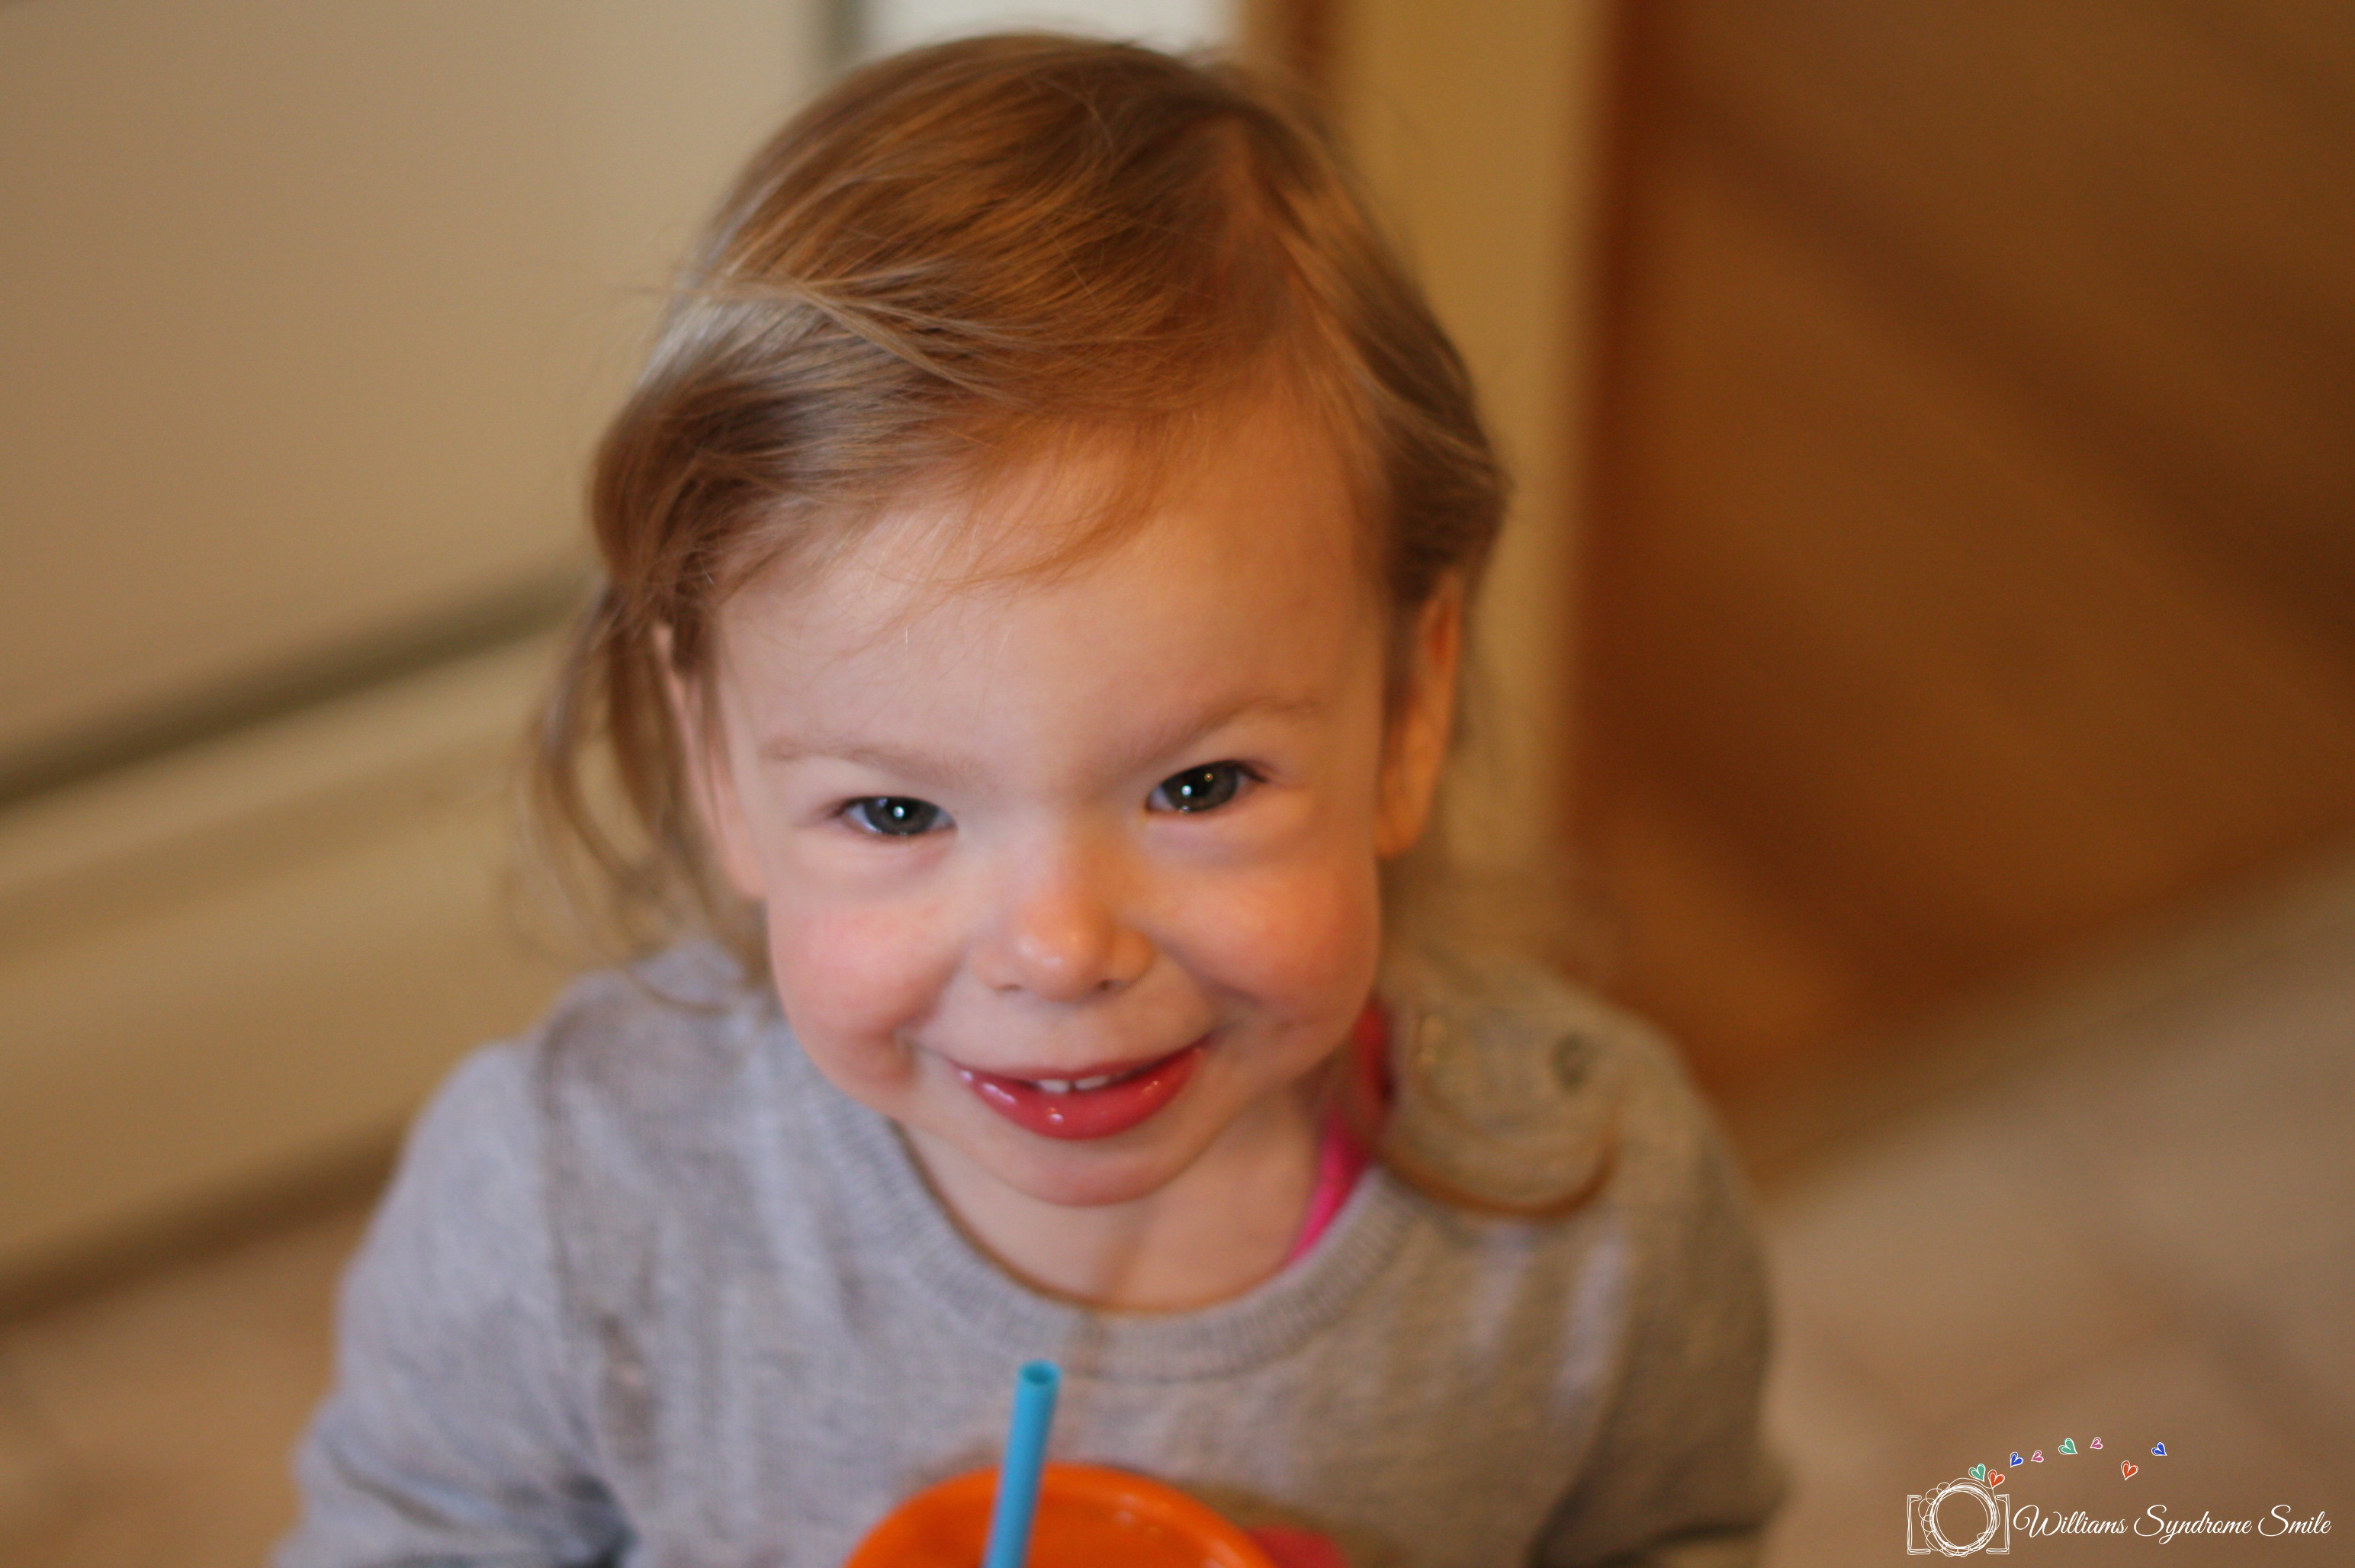 To the Newly Diagnosed | Williams Syndrome Smile